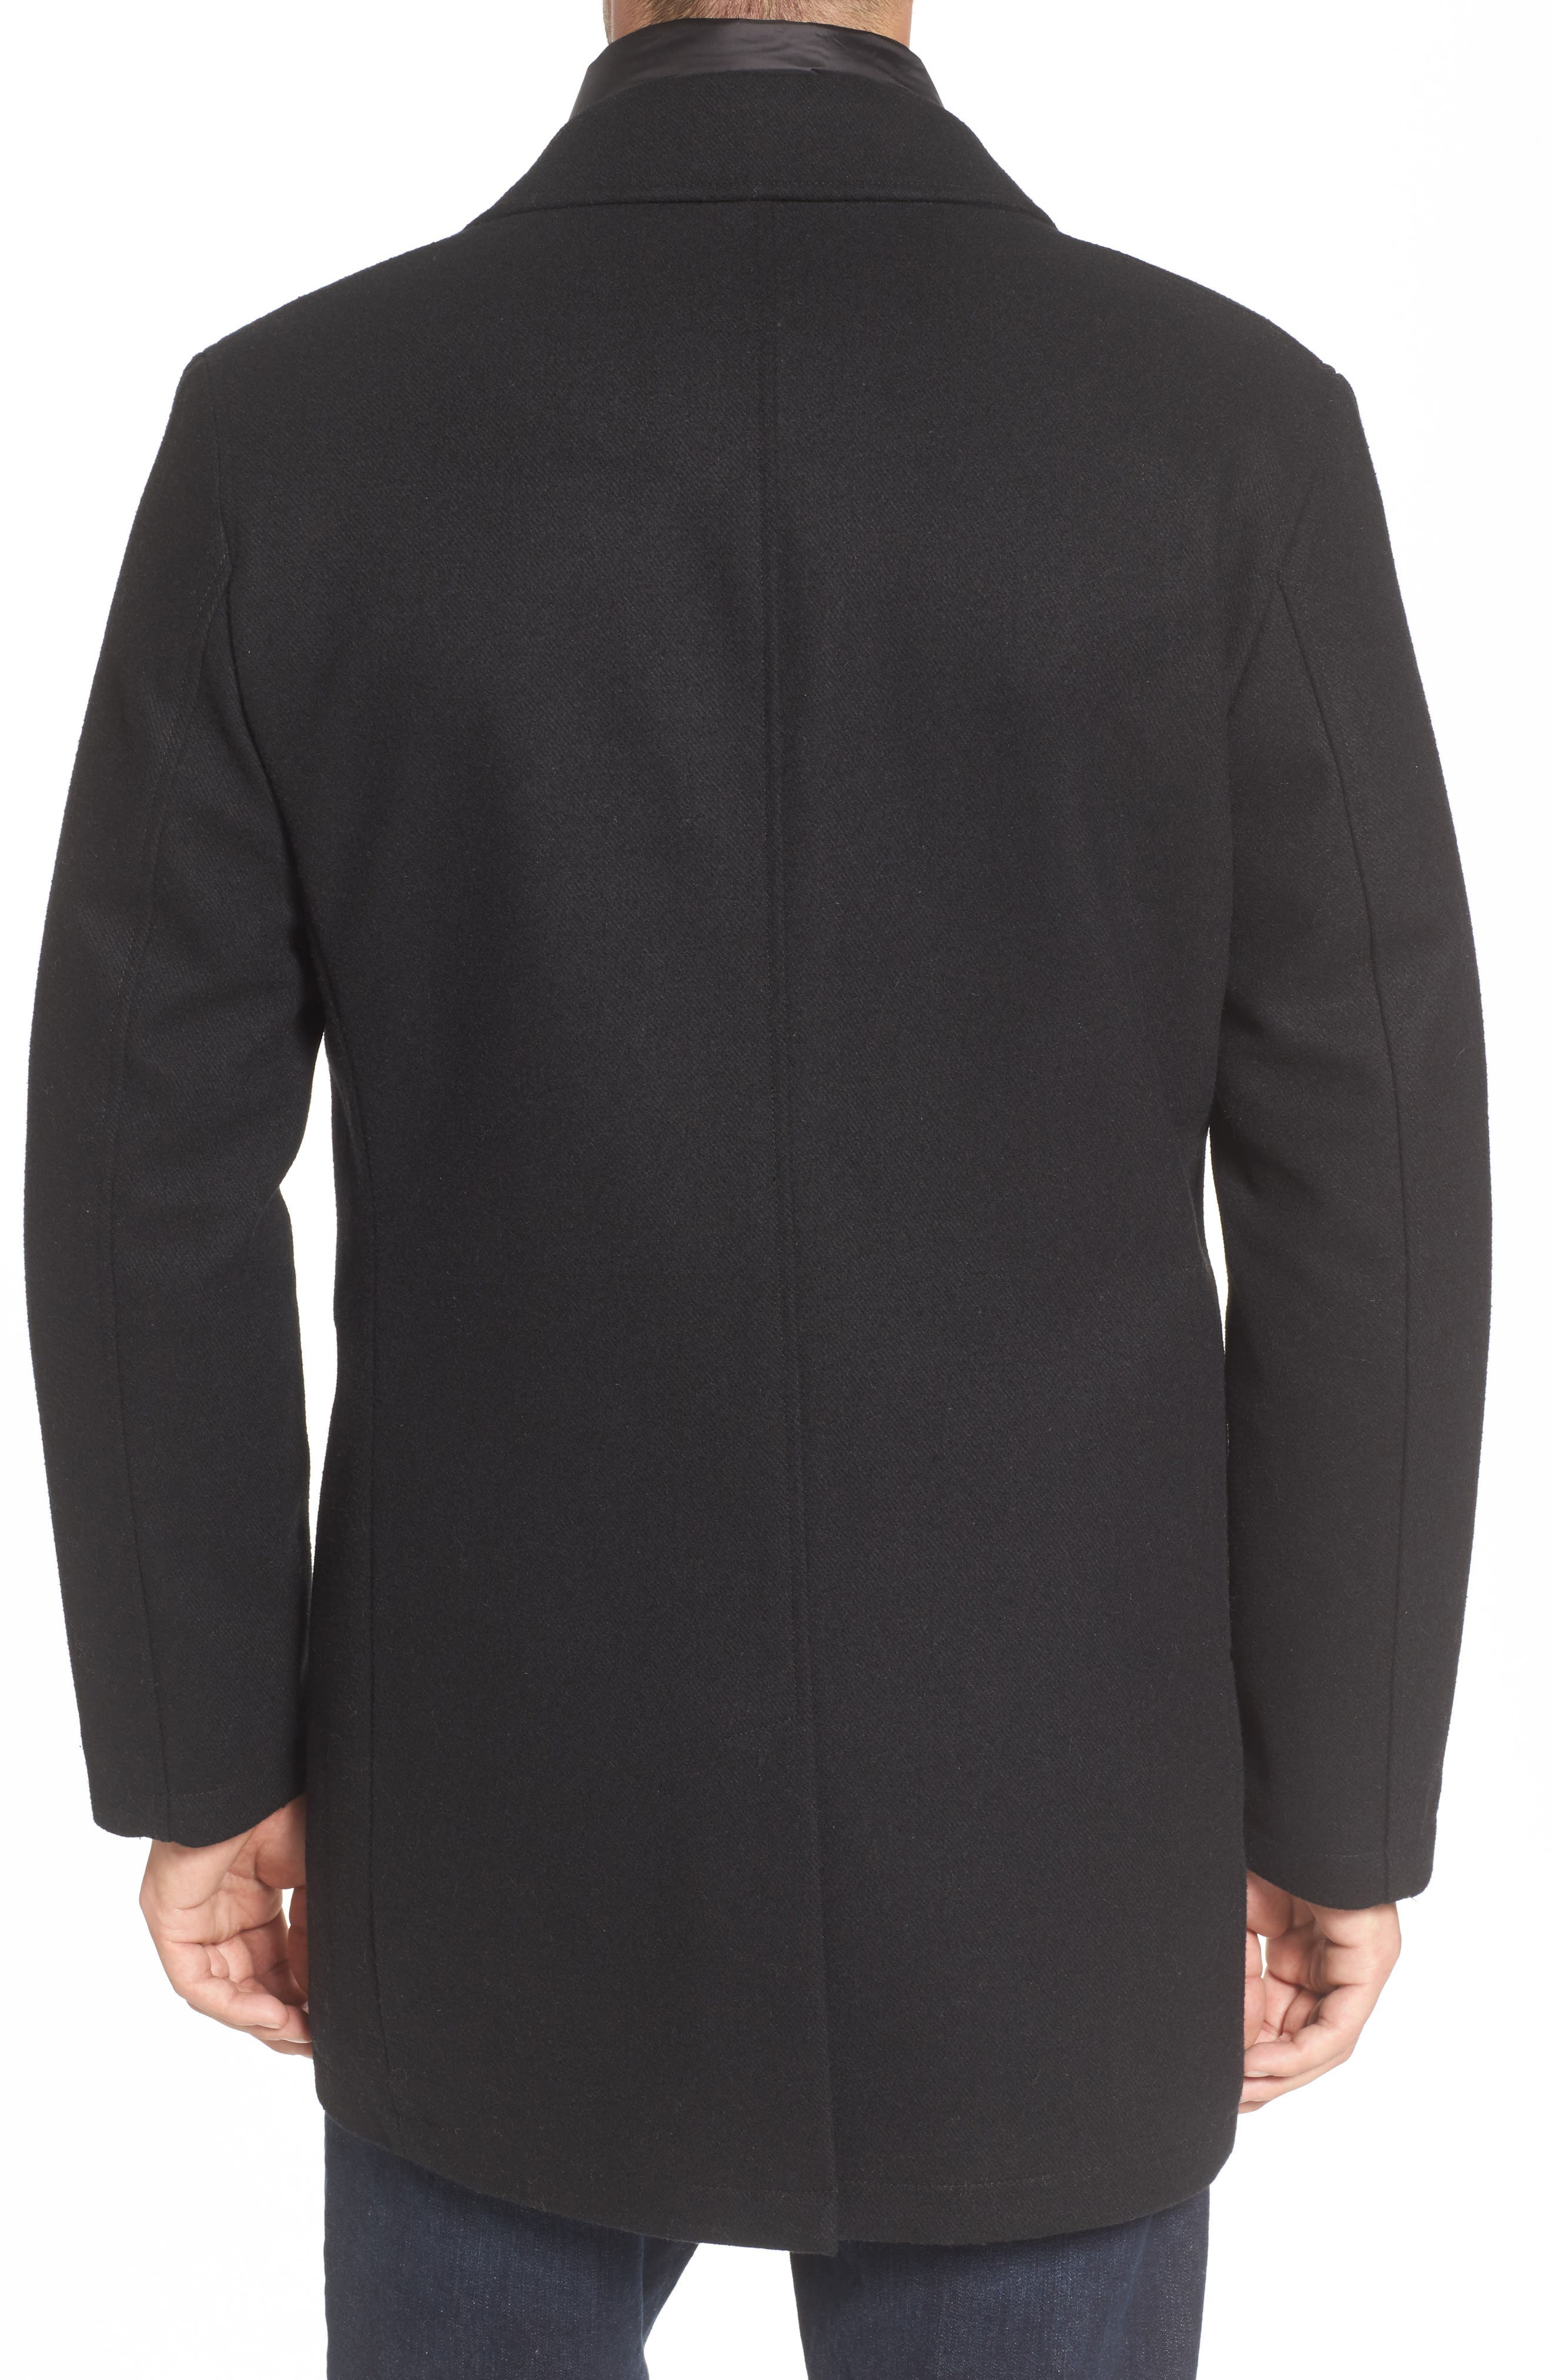 Water Repellent Jacket with Inset Bib & Faux Fur Lining,                             Alternate thumbnail 2, color,                             Black